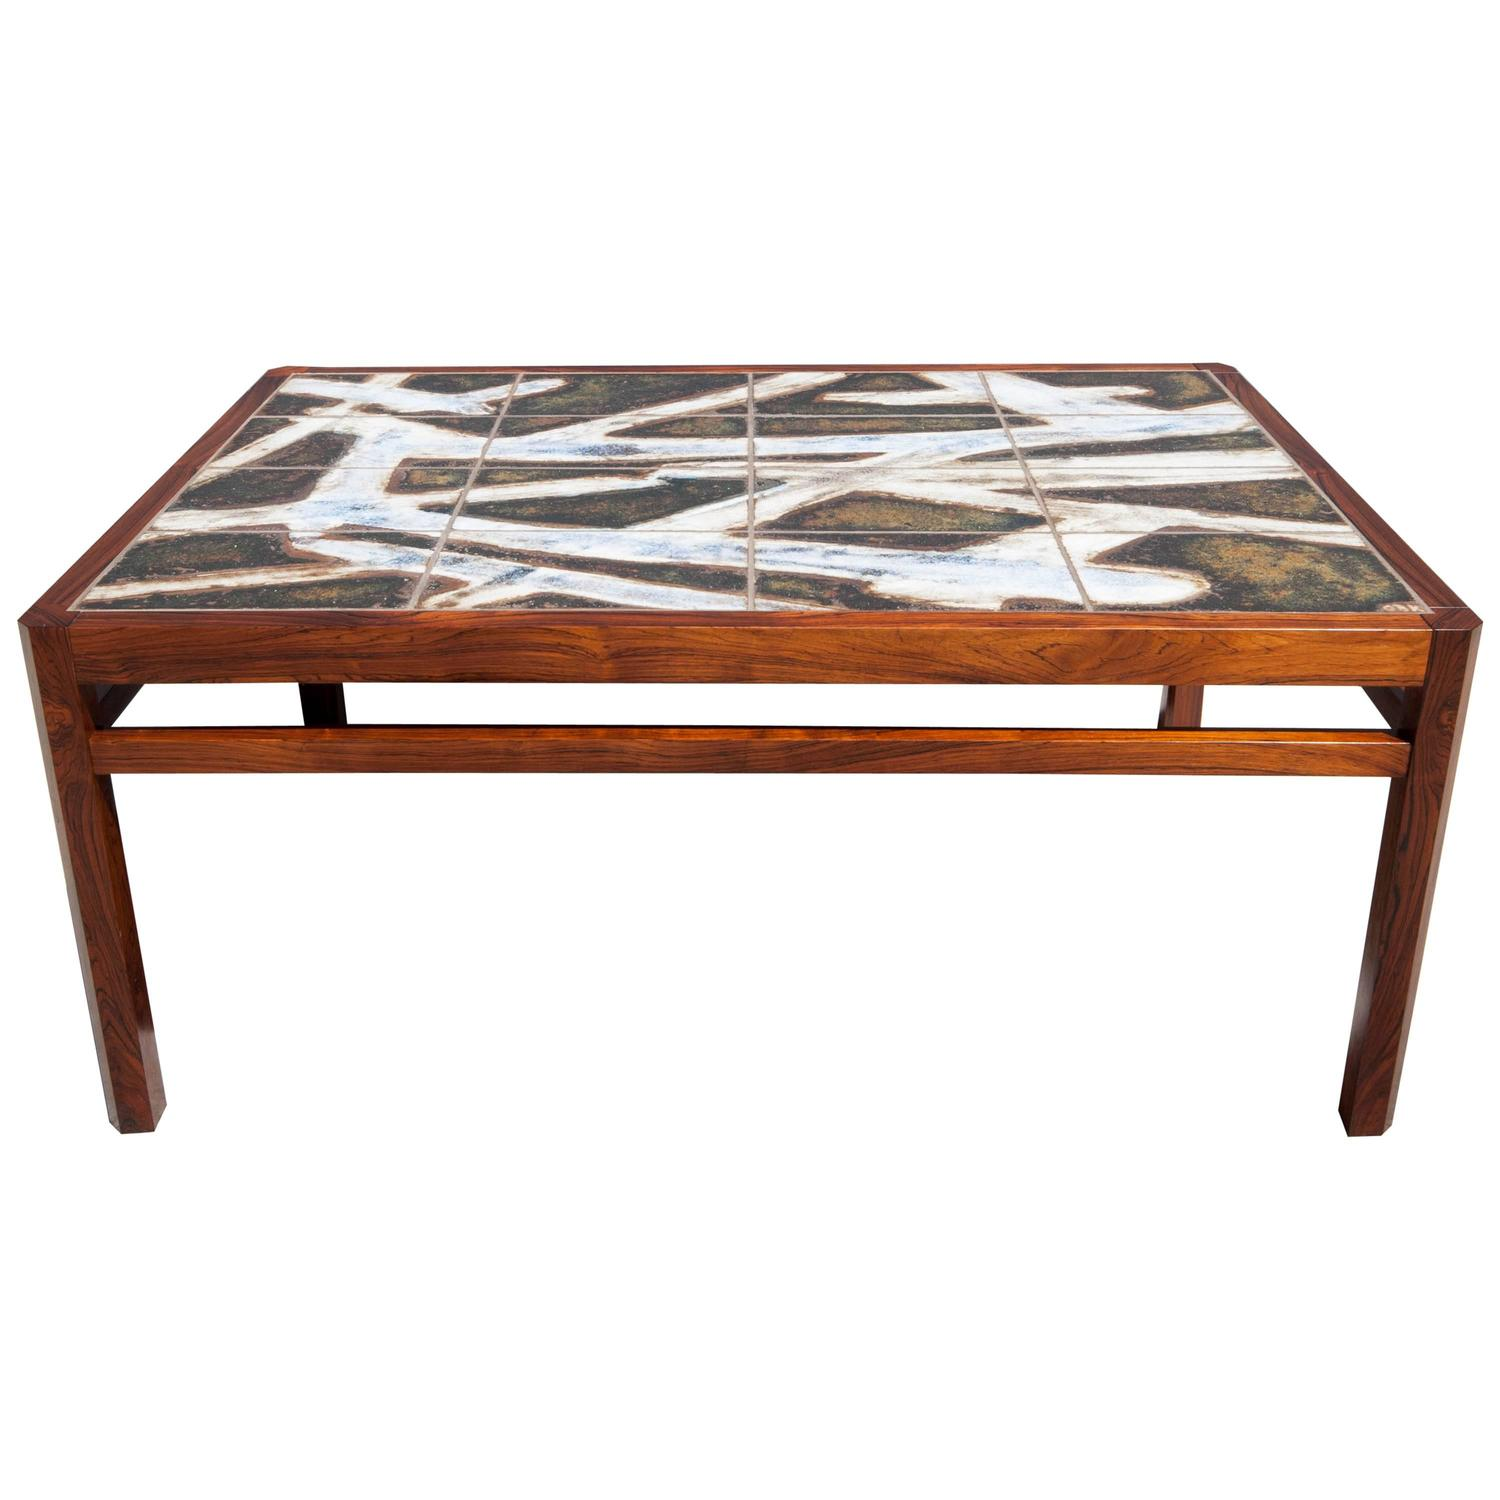 Danish Rosewood Abstract Tile Coffee Table At 1stdibs